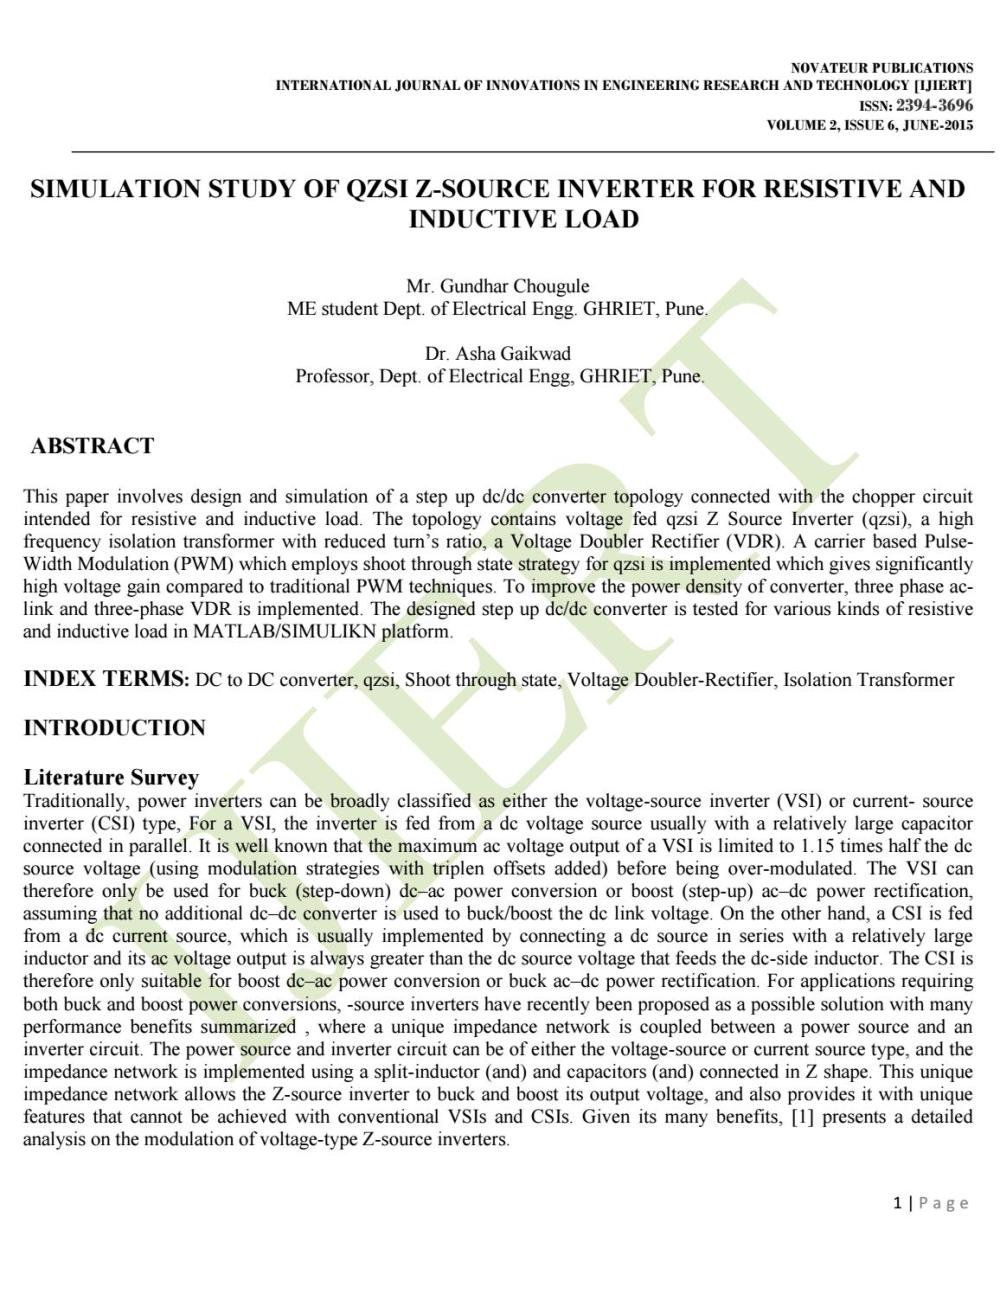 medium resolution of ijiert simulation study of qzsi z source inverter for resistive and inductive load